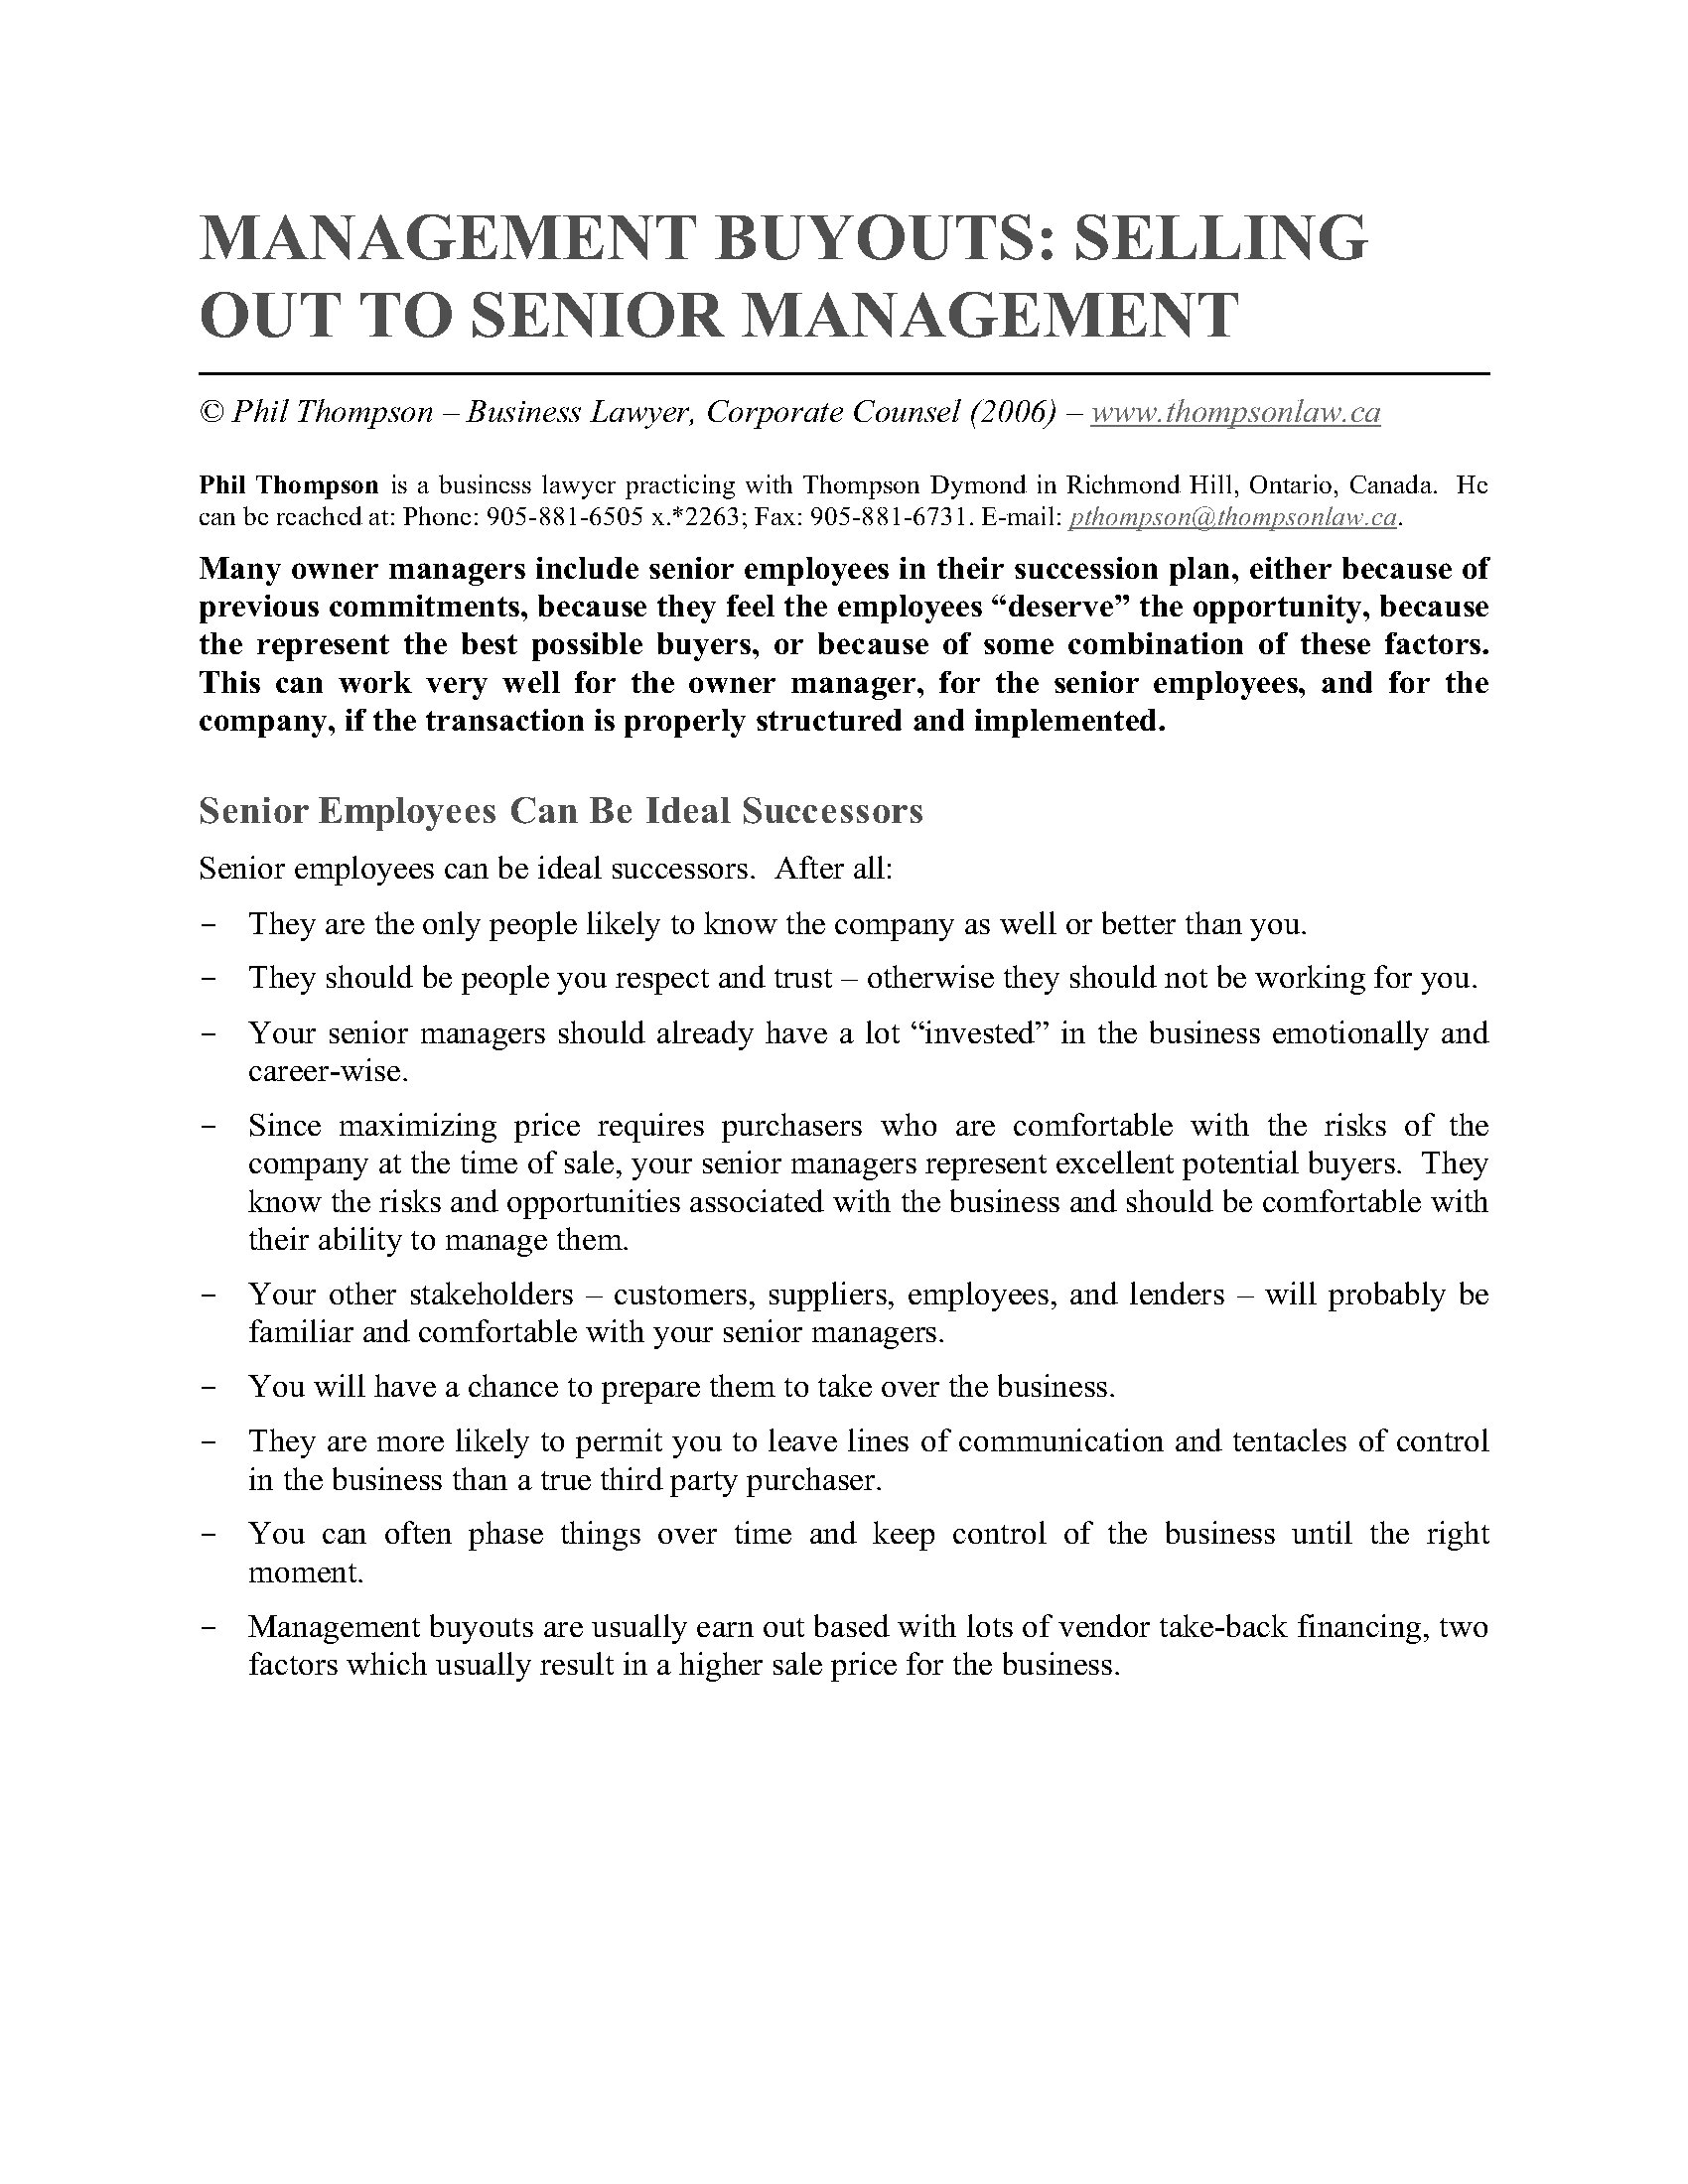 Management Buyouts  Selling Out To Senior Management  Legal Forms  Picture Of Management Buyouts  Selling Out To Senior Management